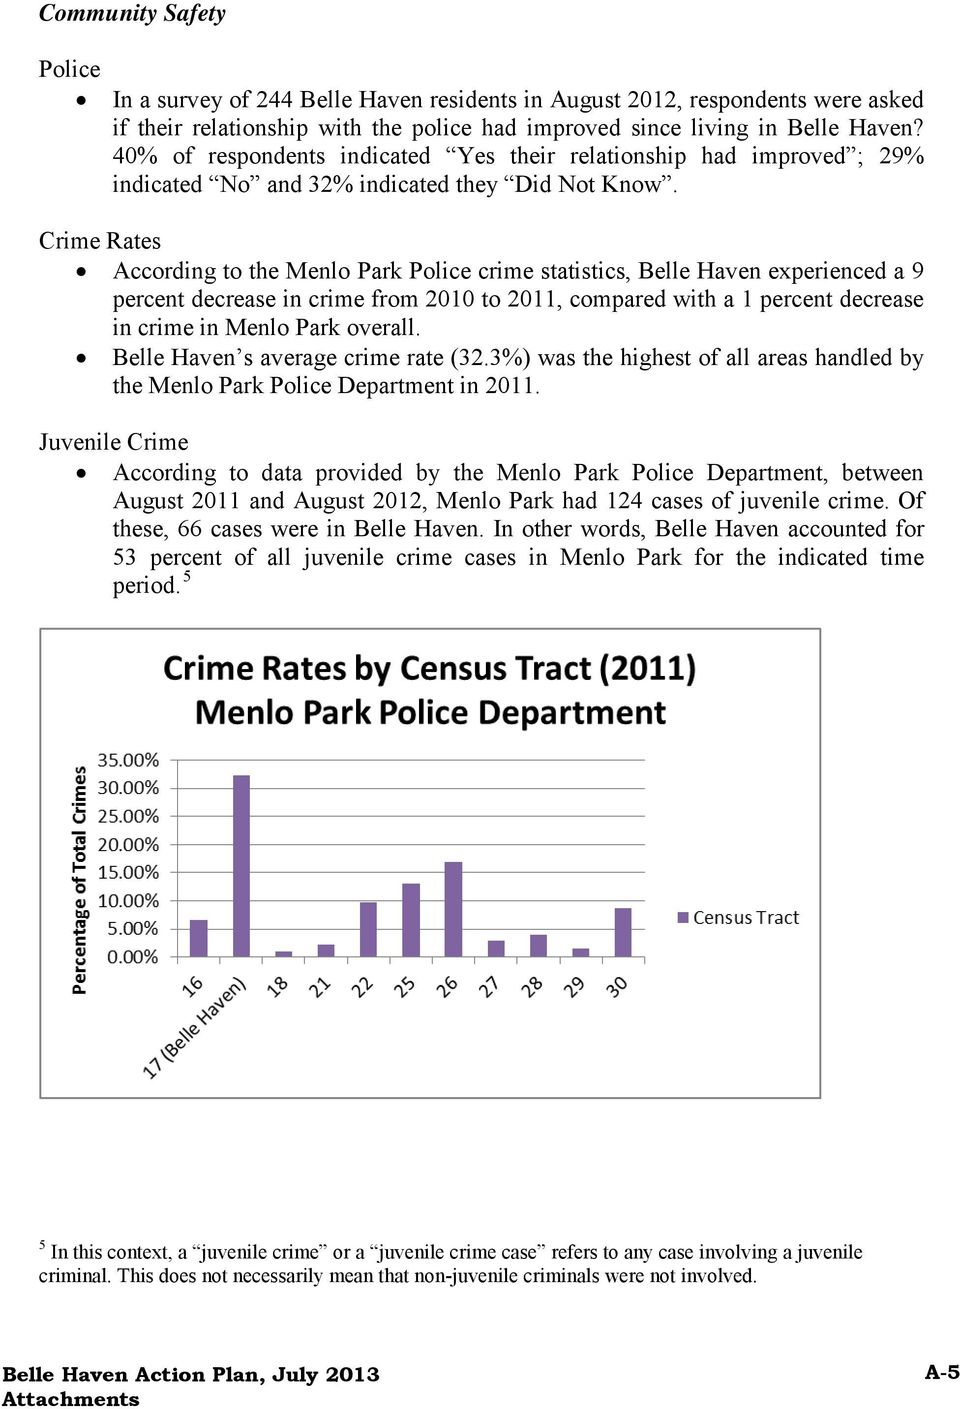 Crime Rates According to the Menlo Park Police crime statistics, Belle Haven experienced a 9 percent decrease in crime from 2010 to 2011, compared with a 1 percent decrease in crime in Menlo Park